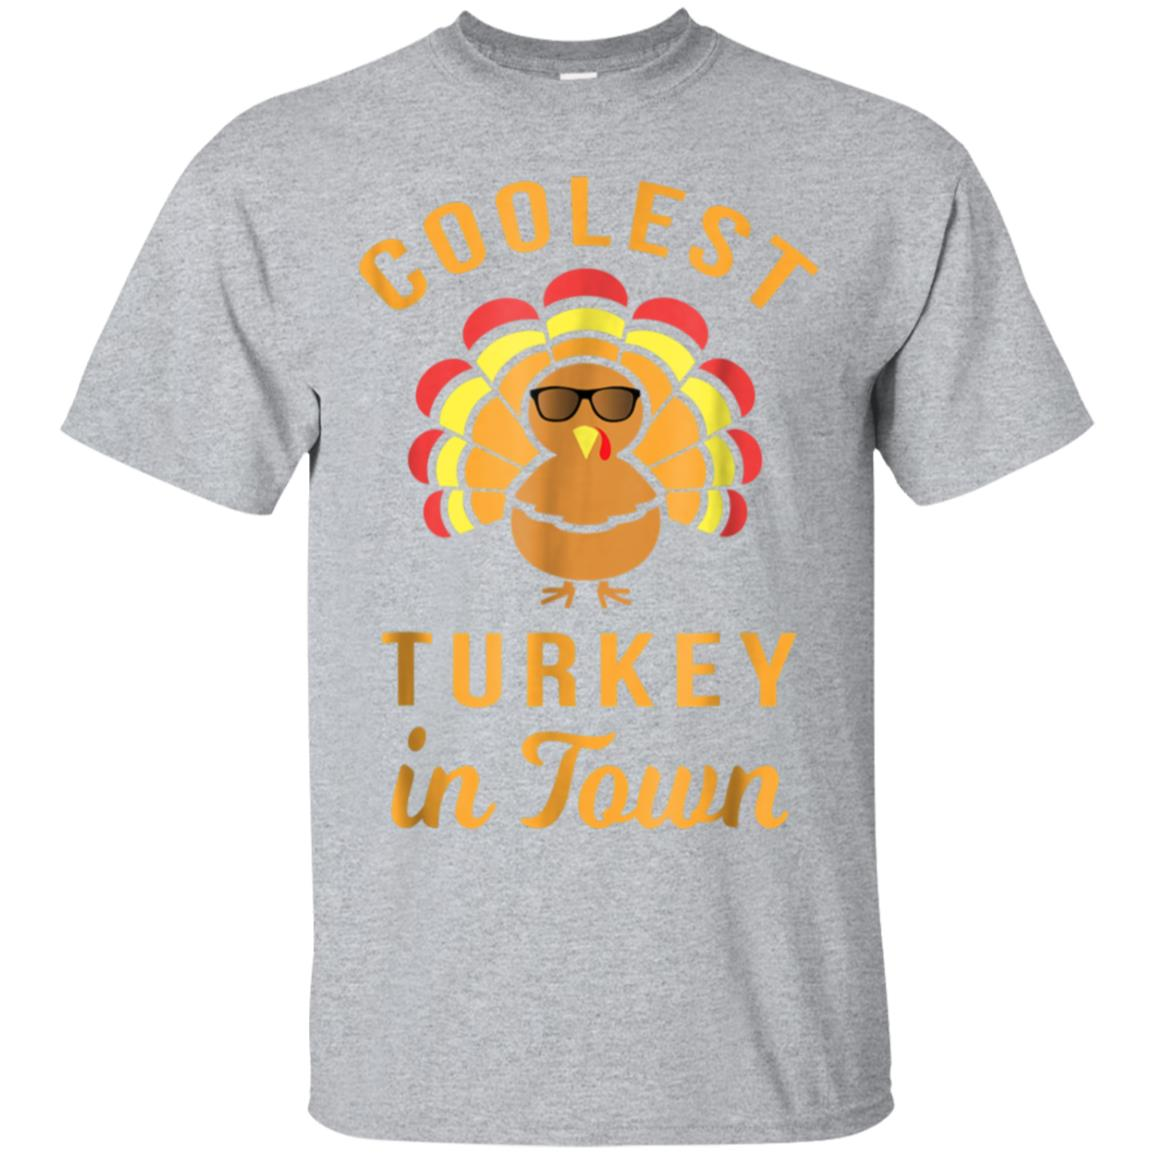 Coolest Turkey in Town Funny Thanksgiving T Shirt 99promocode